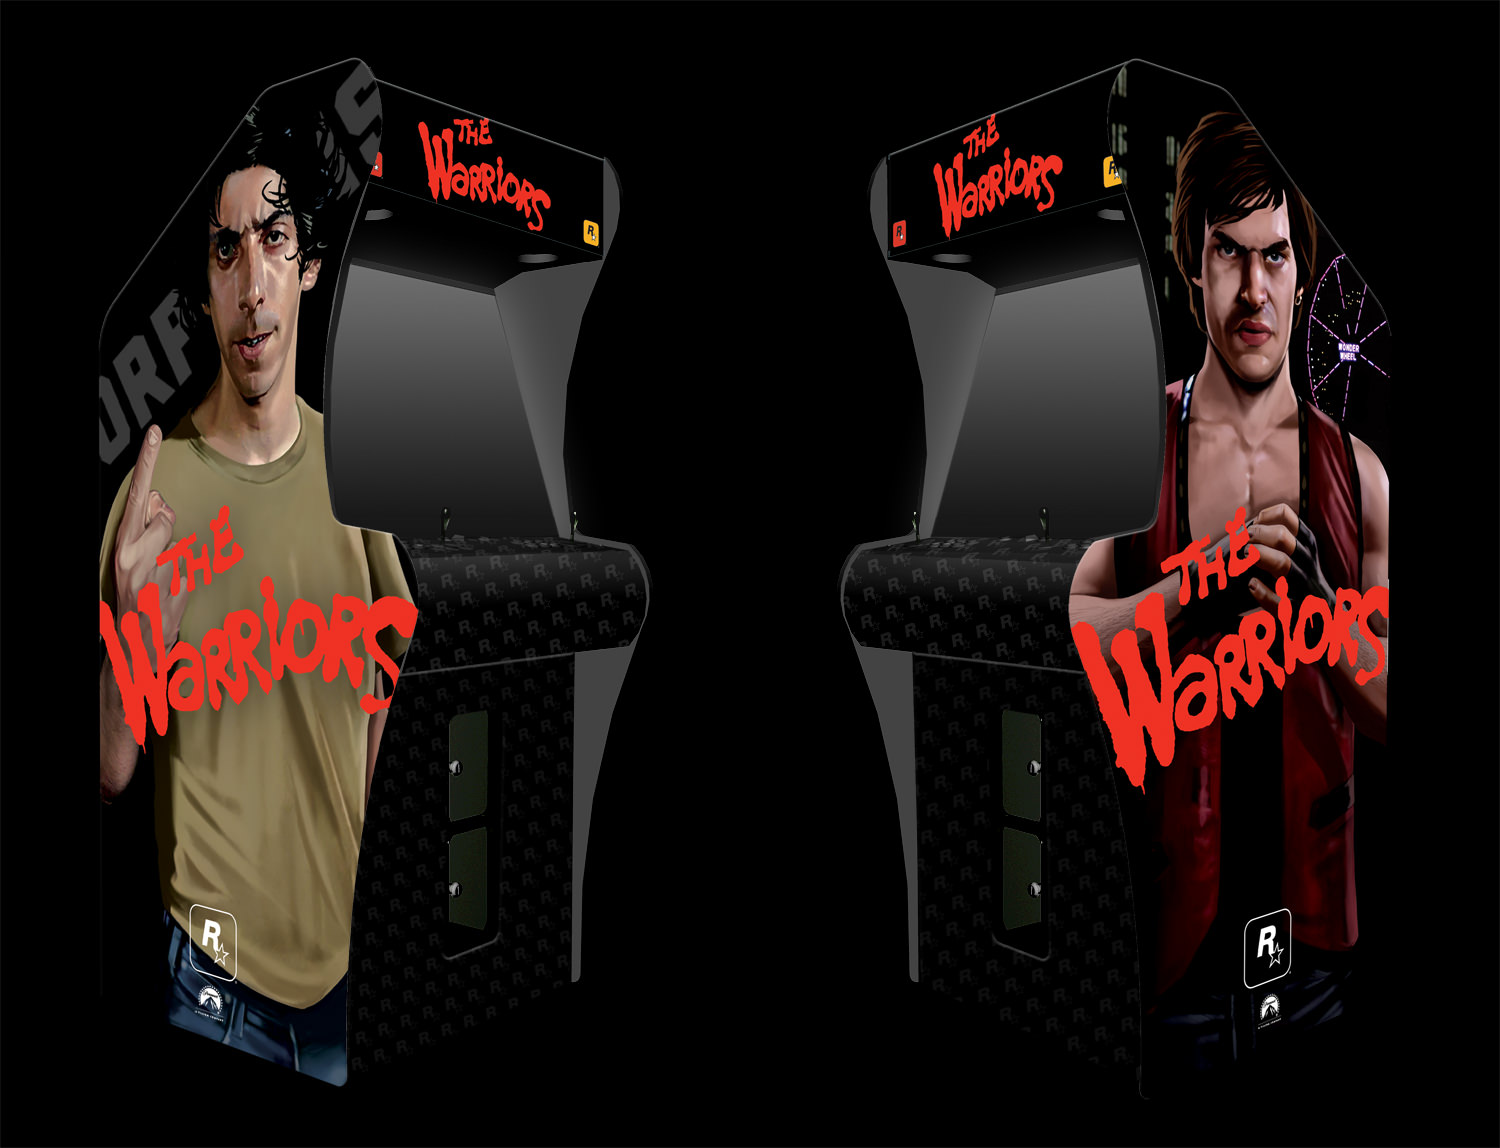 The Warriors Movie Site - Arcade Machine